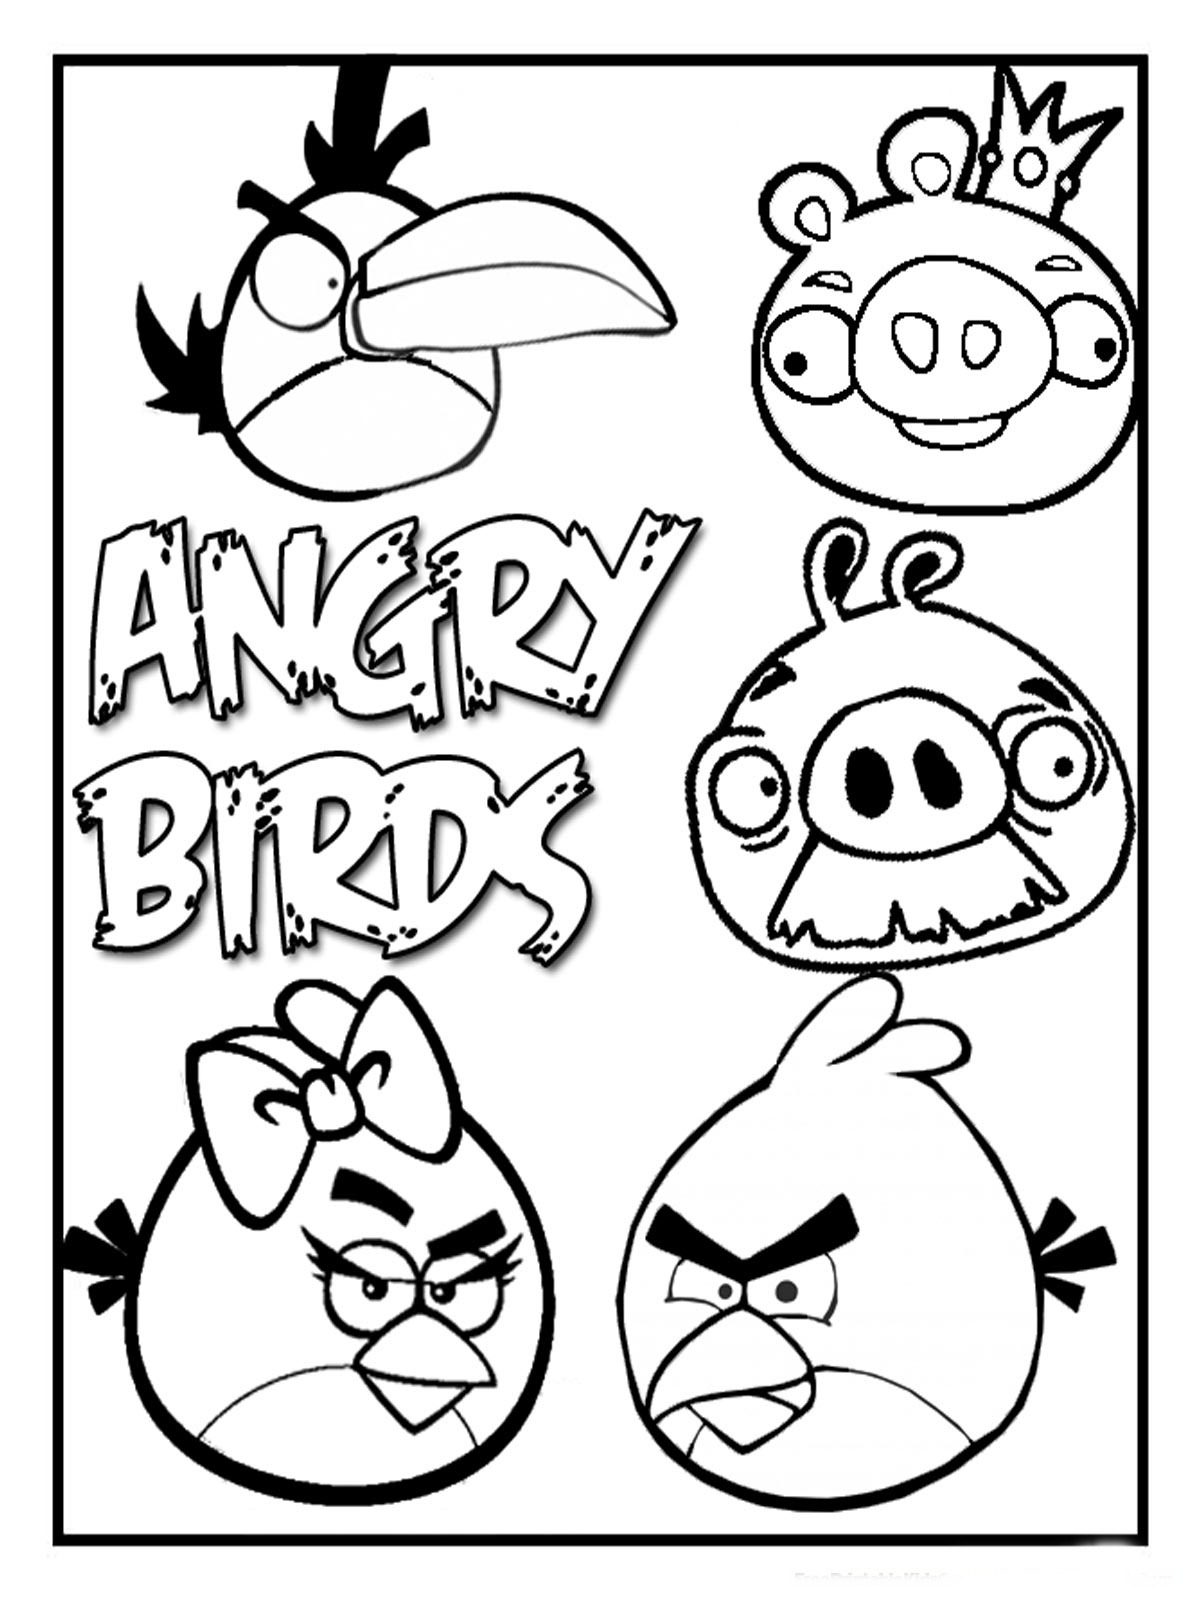 Angry Bird Coloring Worksheet